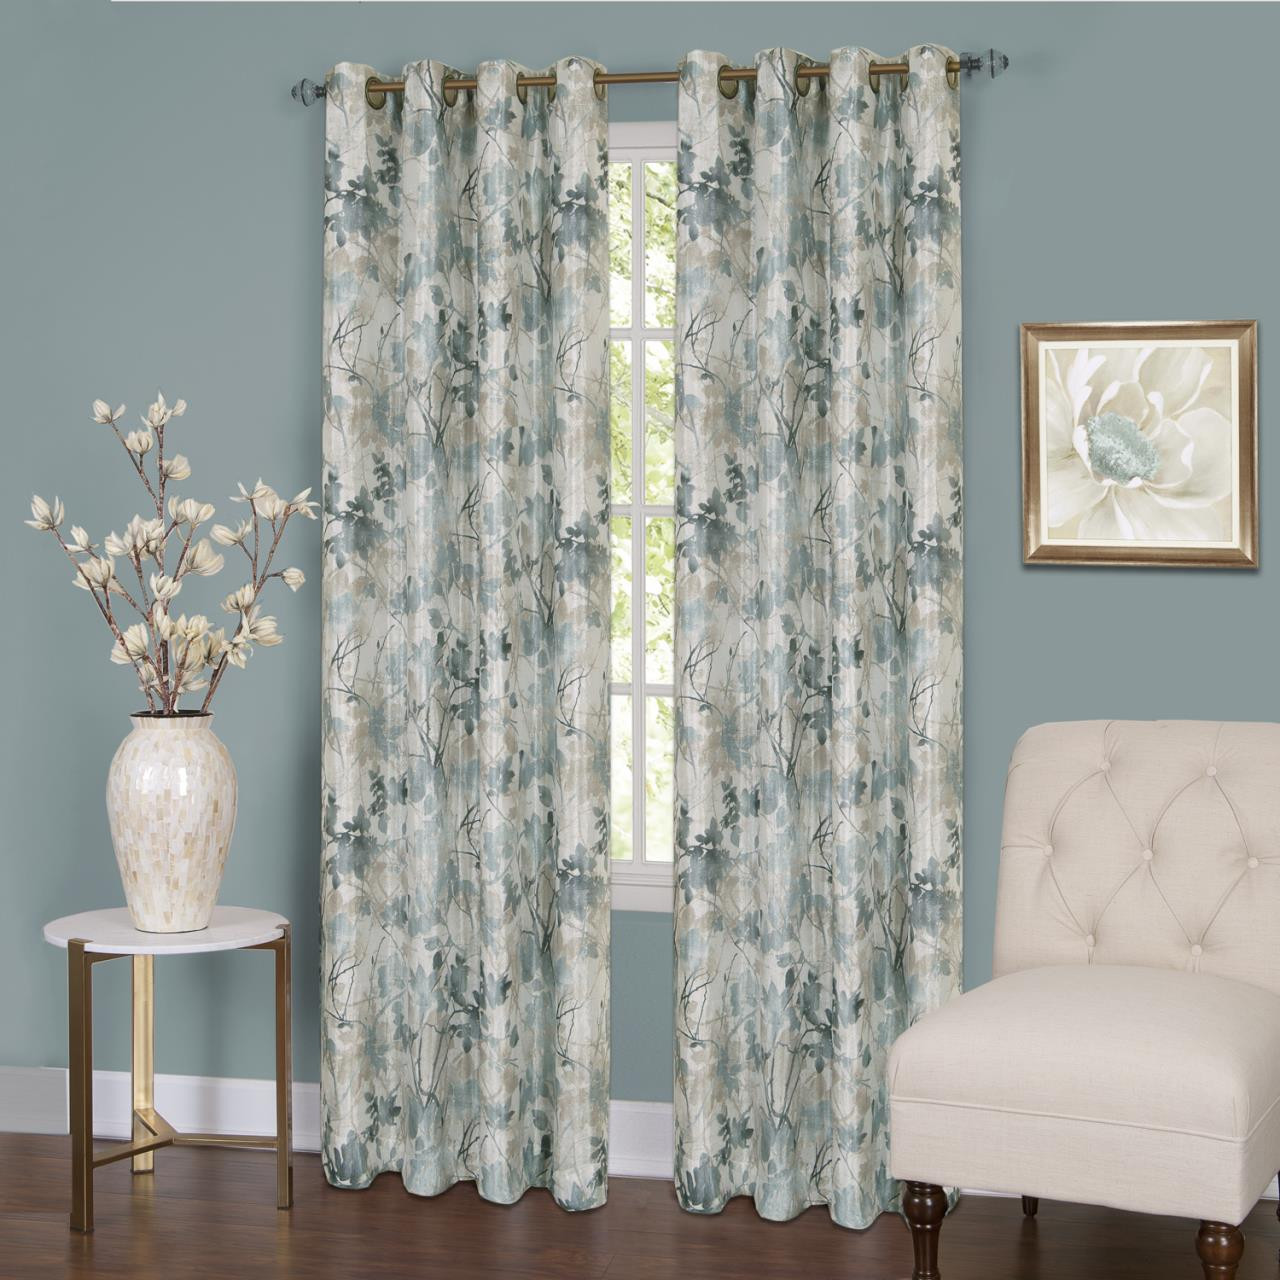 Tranquil Curtain - 054006241387